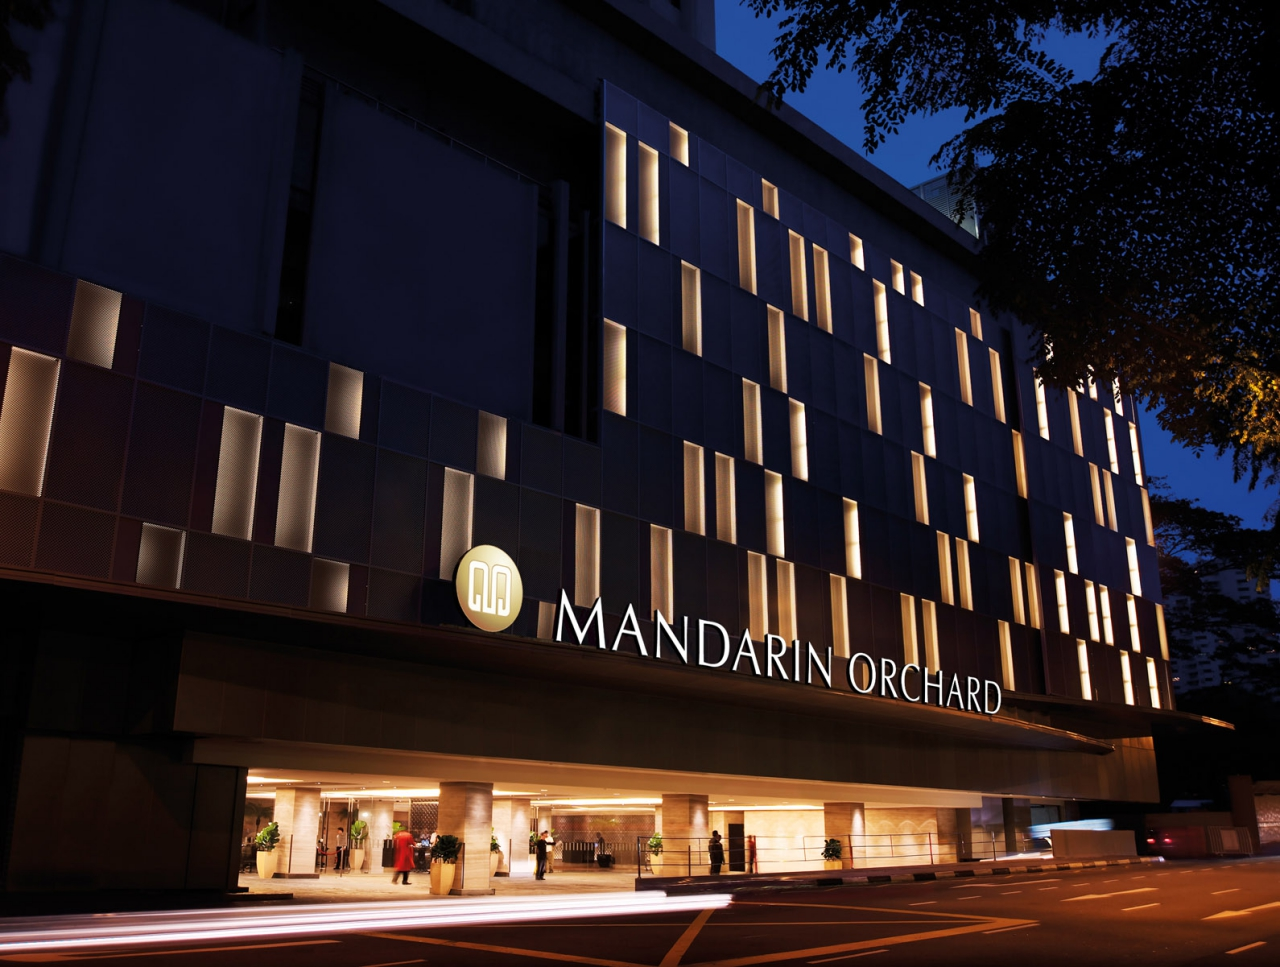 Mandarin-Orchard-Singapore-Night-Facade_01